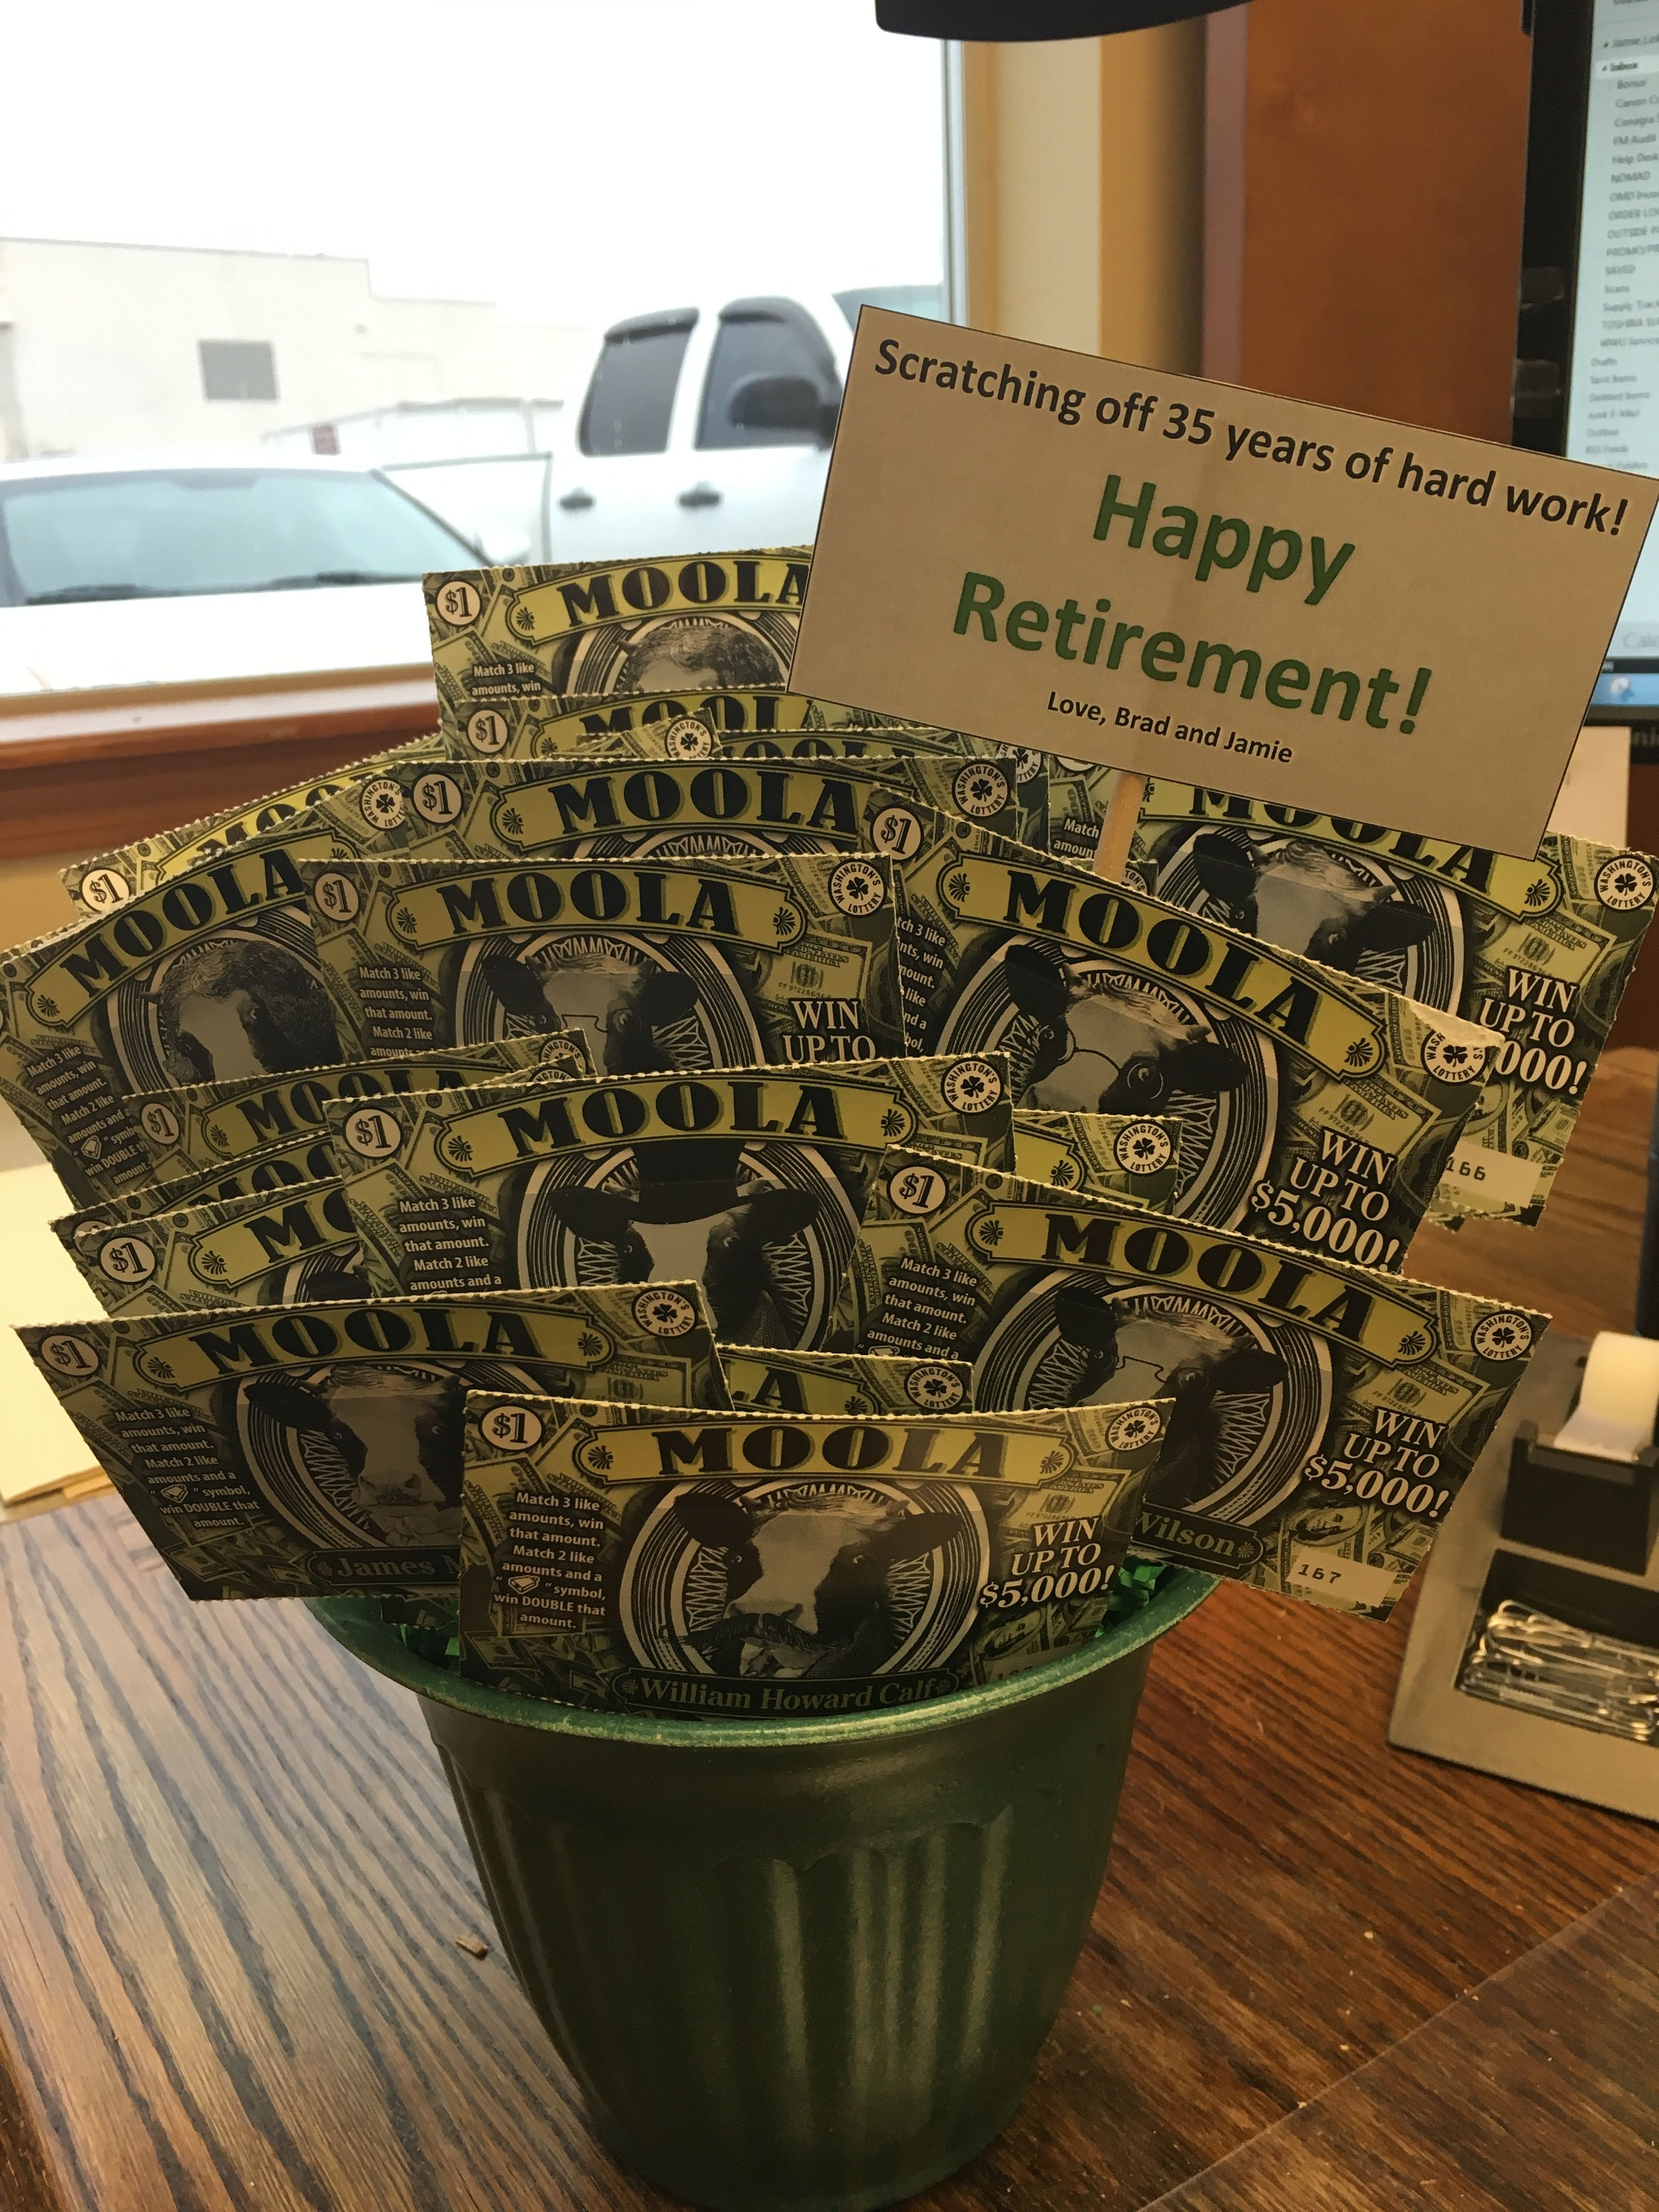 Scratch Ticket Retirement Gift I Made Ideas Retirement